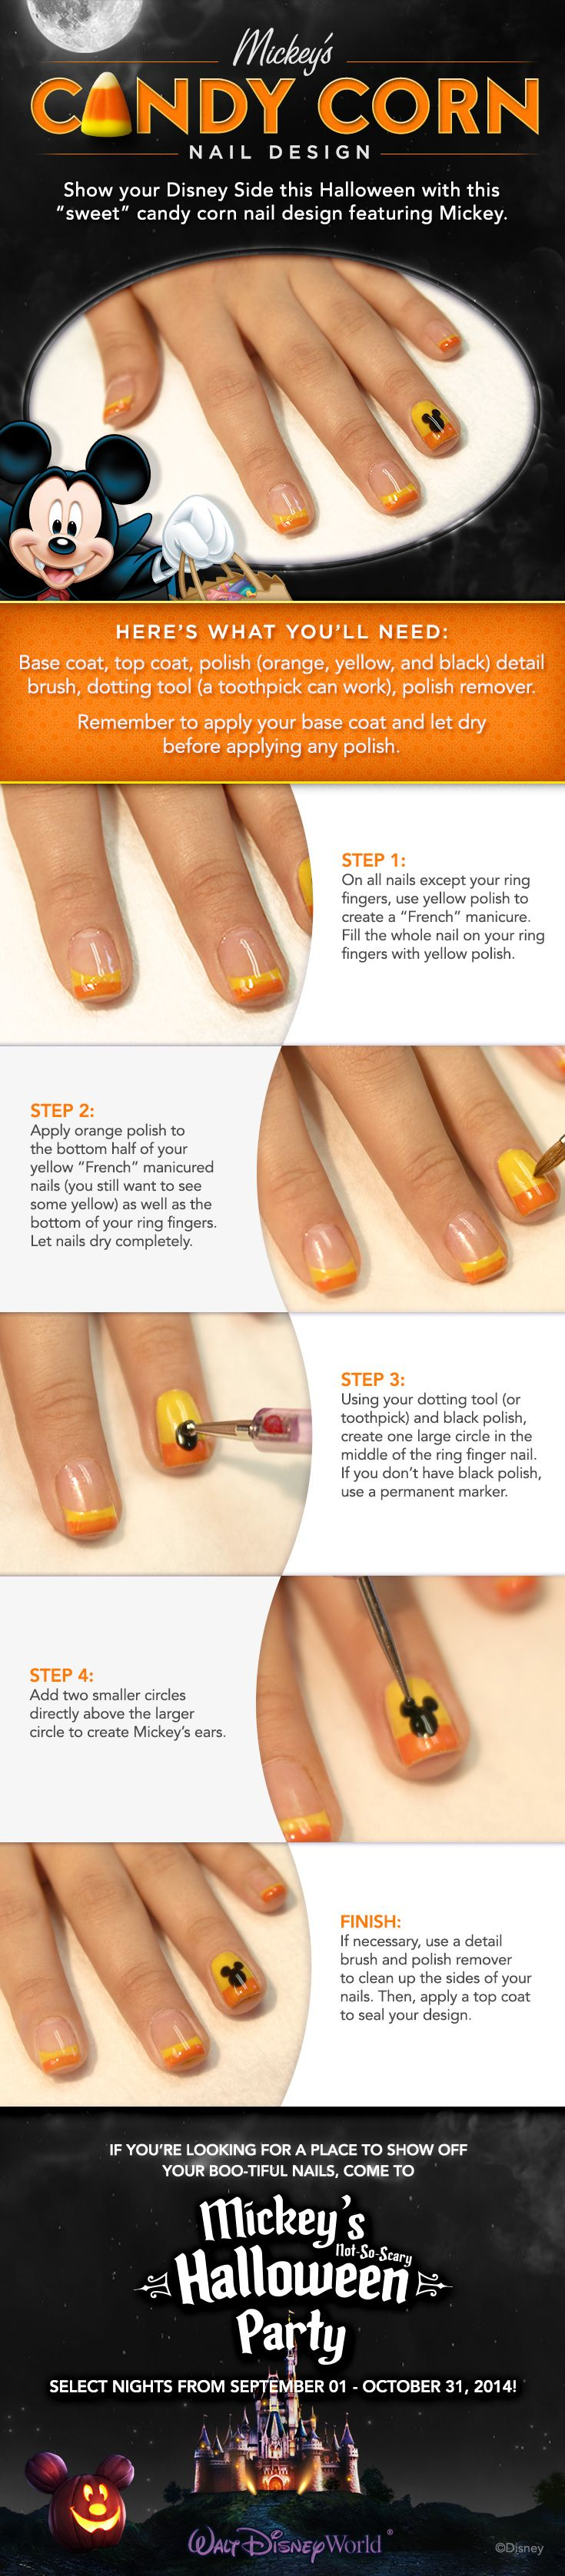 Get ready for Mickey's Not-So-Scary Halloween Party with these Candy Corn DIY Nails! #waltdisneyworld